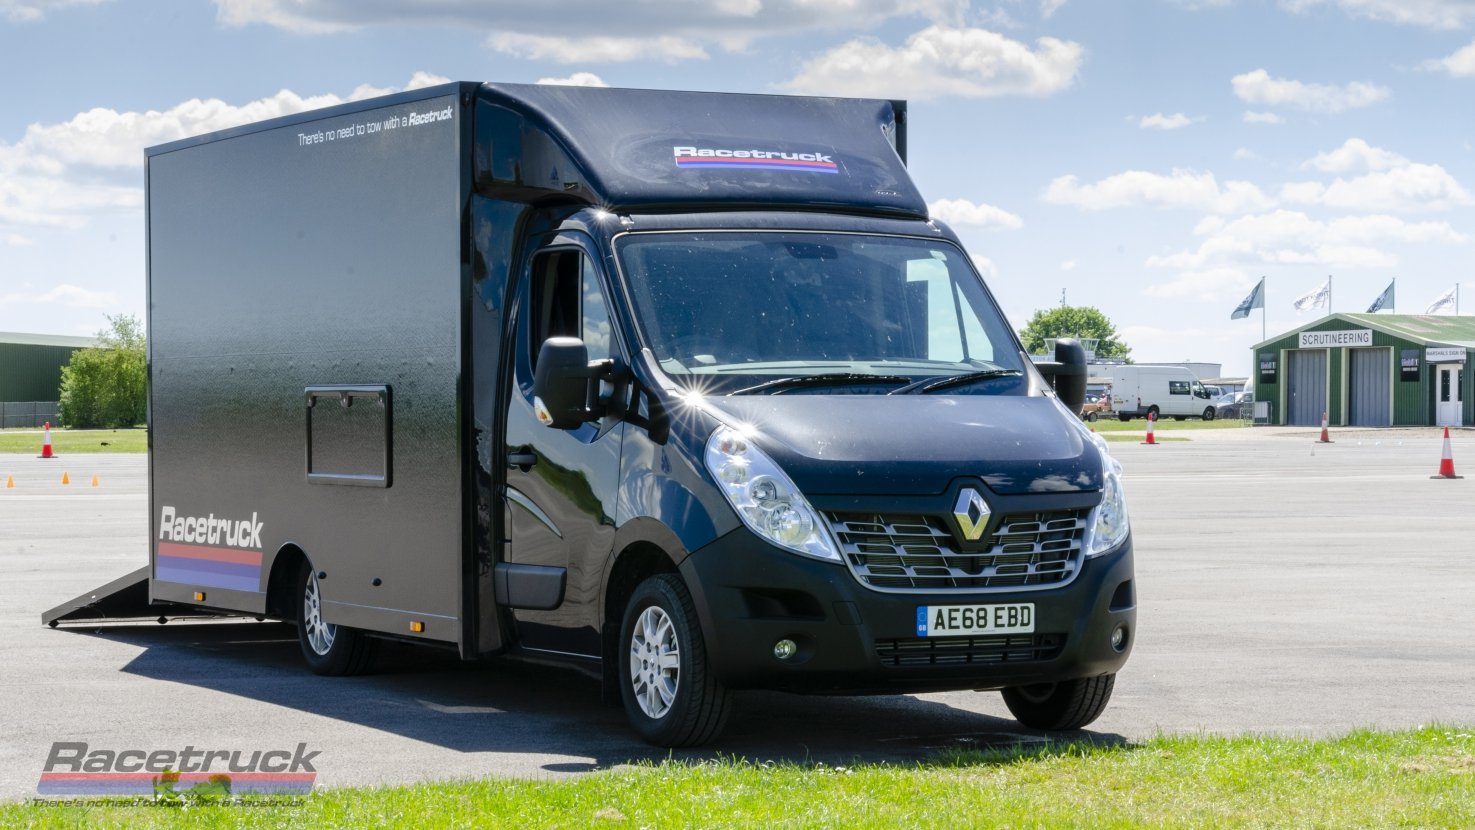 2019 Racetruck – Renault Master 2.3ltr E6Y Race Car Transporter For Sale (picture 3 of 6)